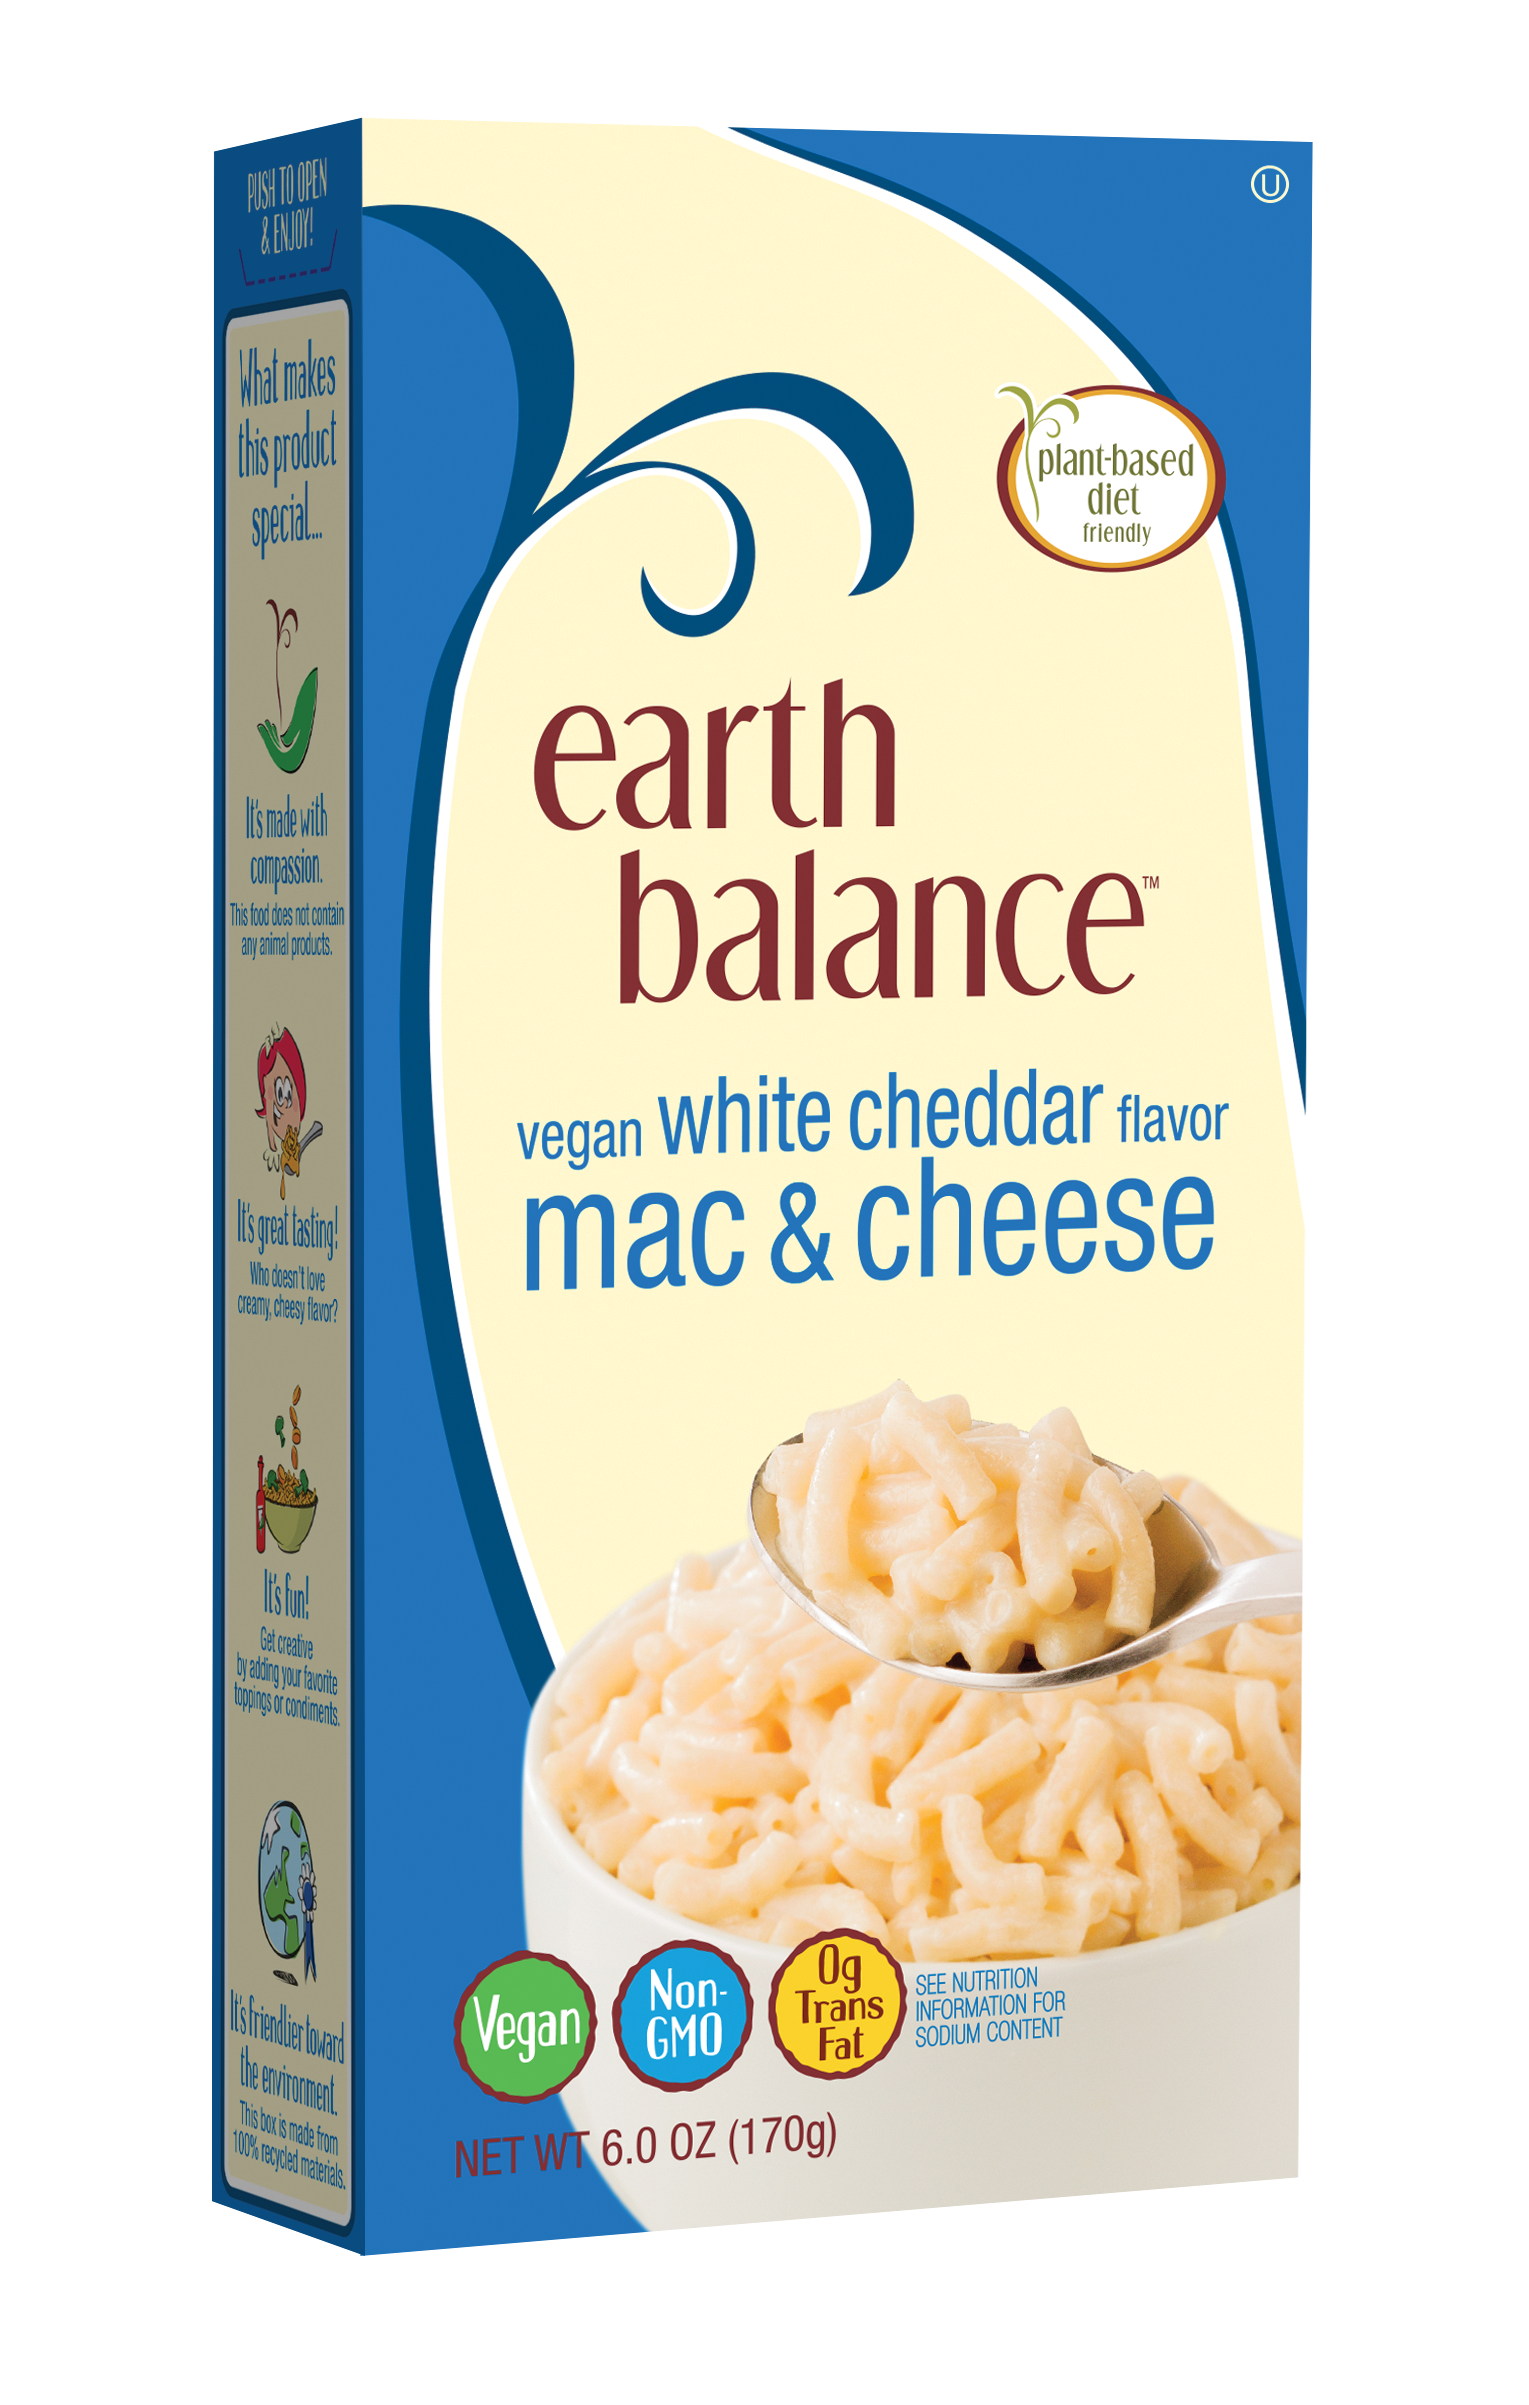 Earth Balance Vegan White Cheddar Flavor Mac & Cheese